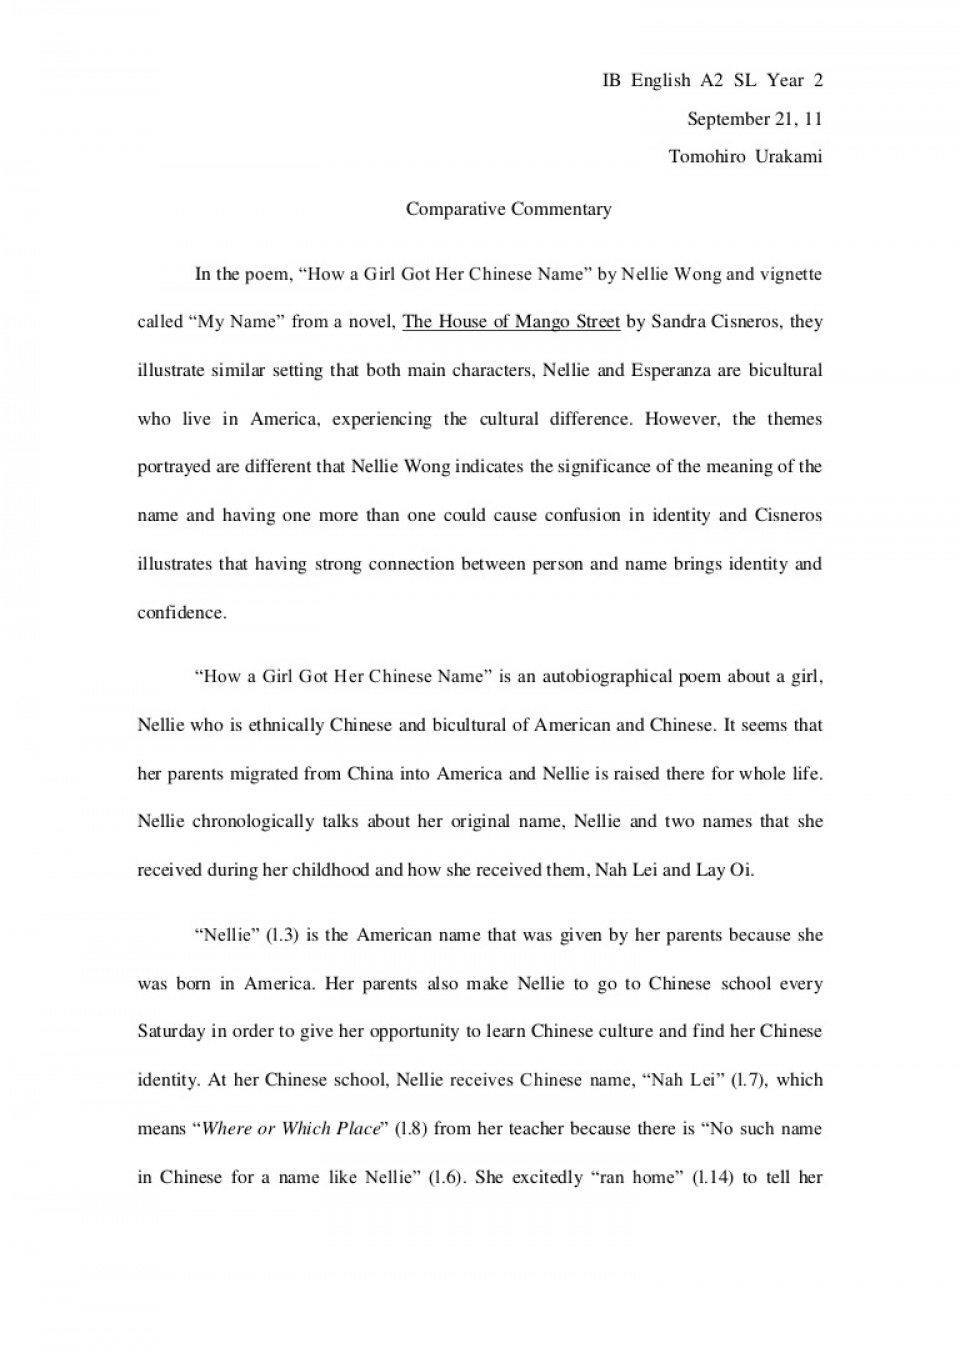 008 Compare And Contrast Essays Comparativeessaydraft Phpapp02 Thumbnail Magnificent Essay Examples 3rd Grade 4th Topics 960